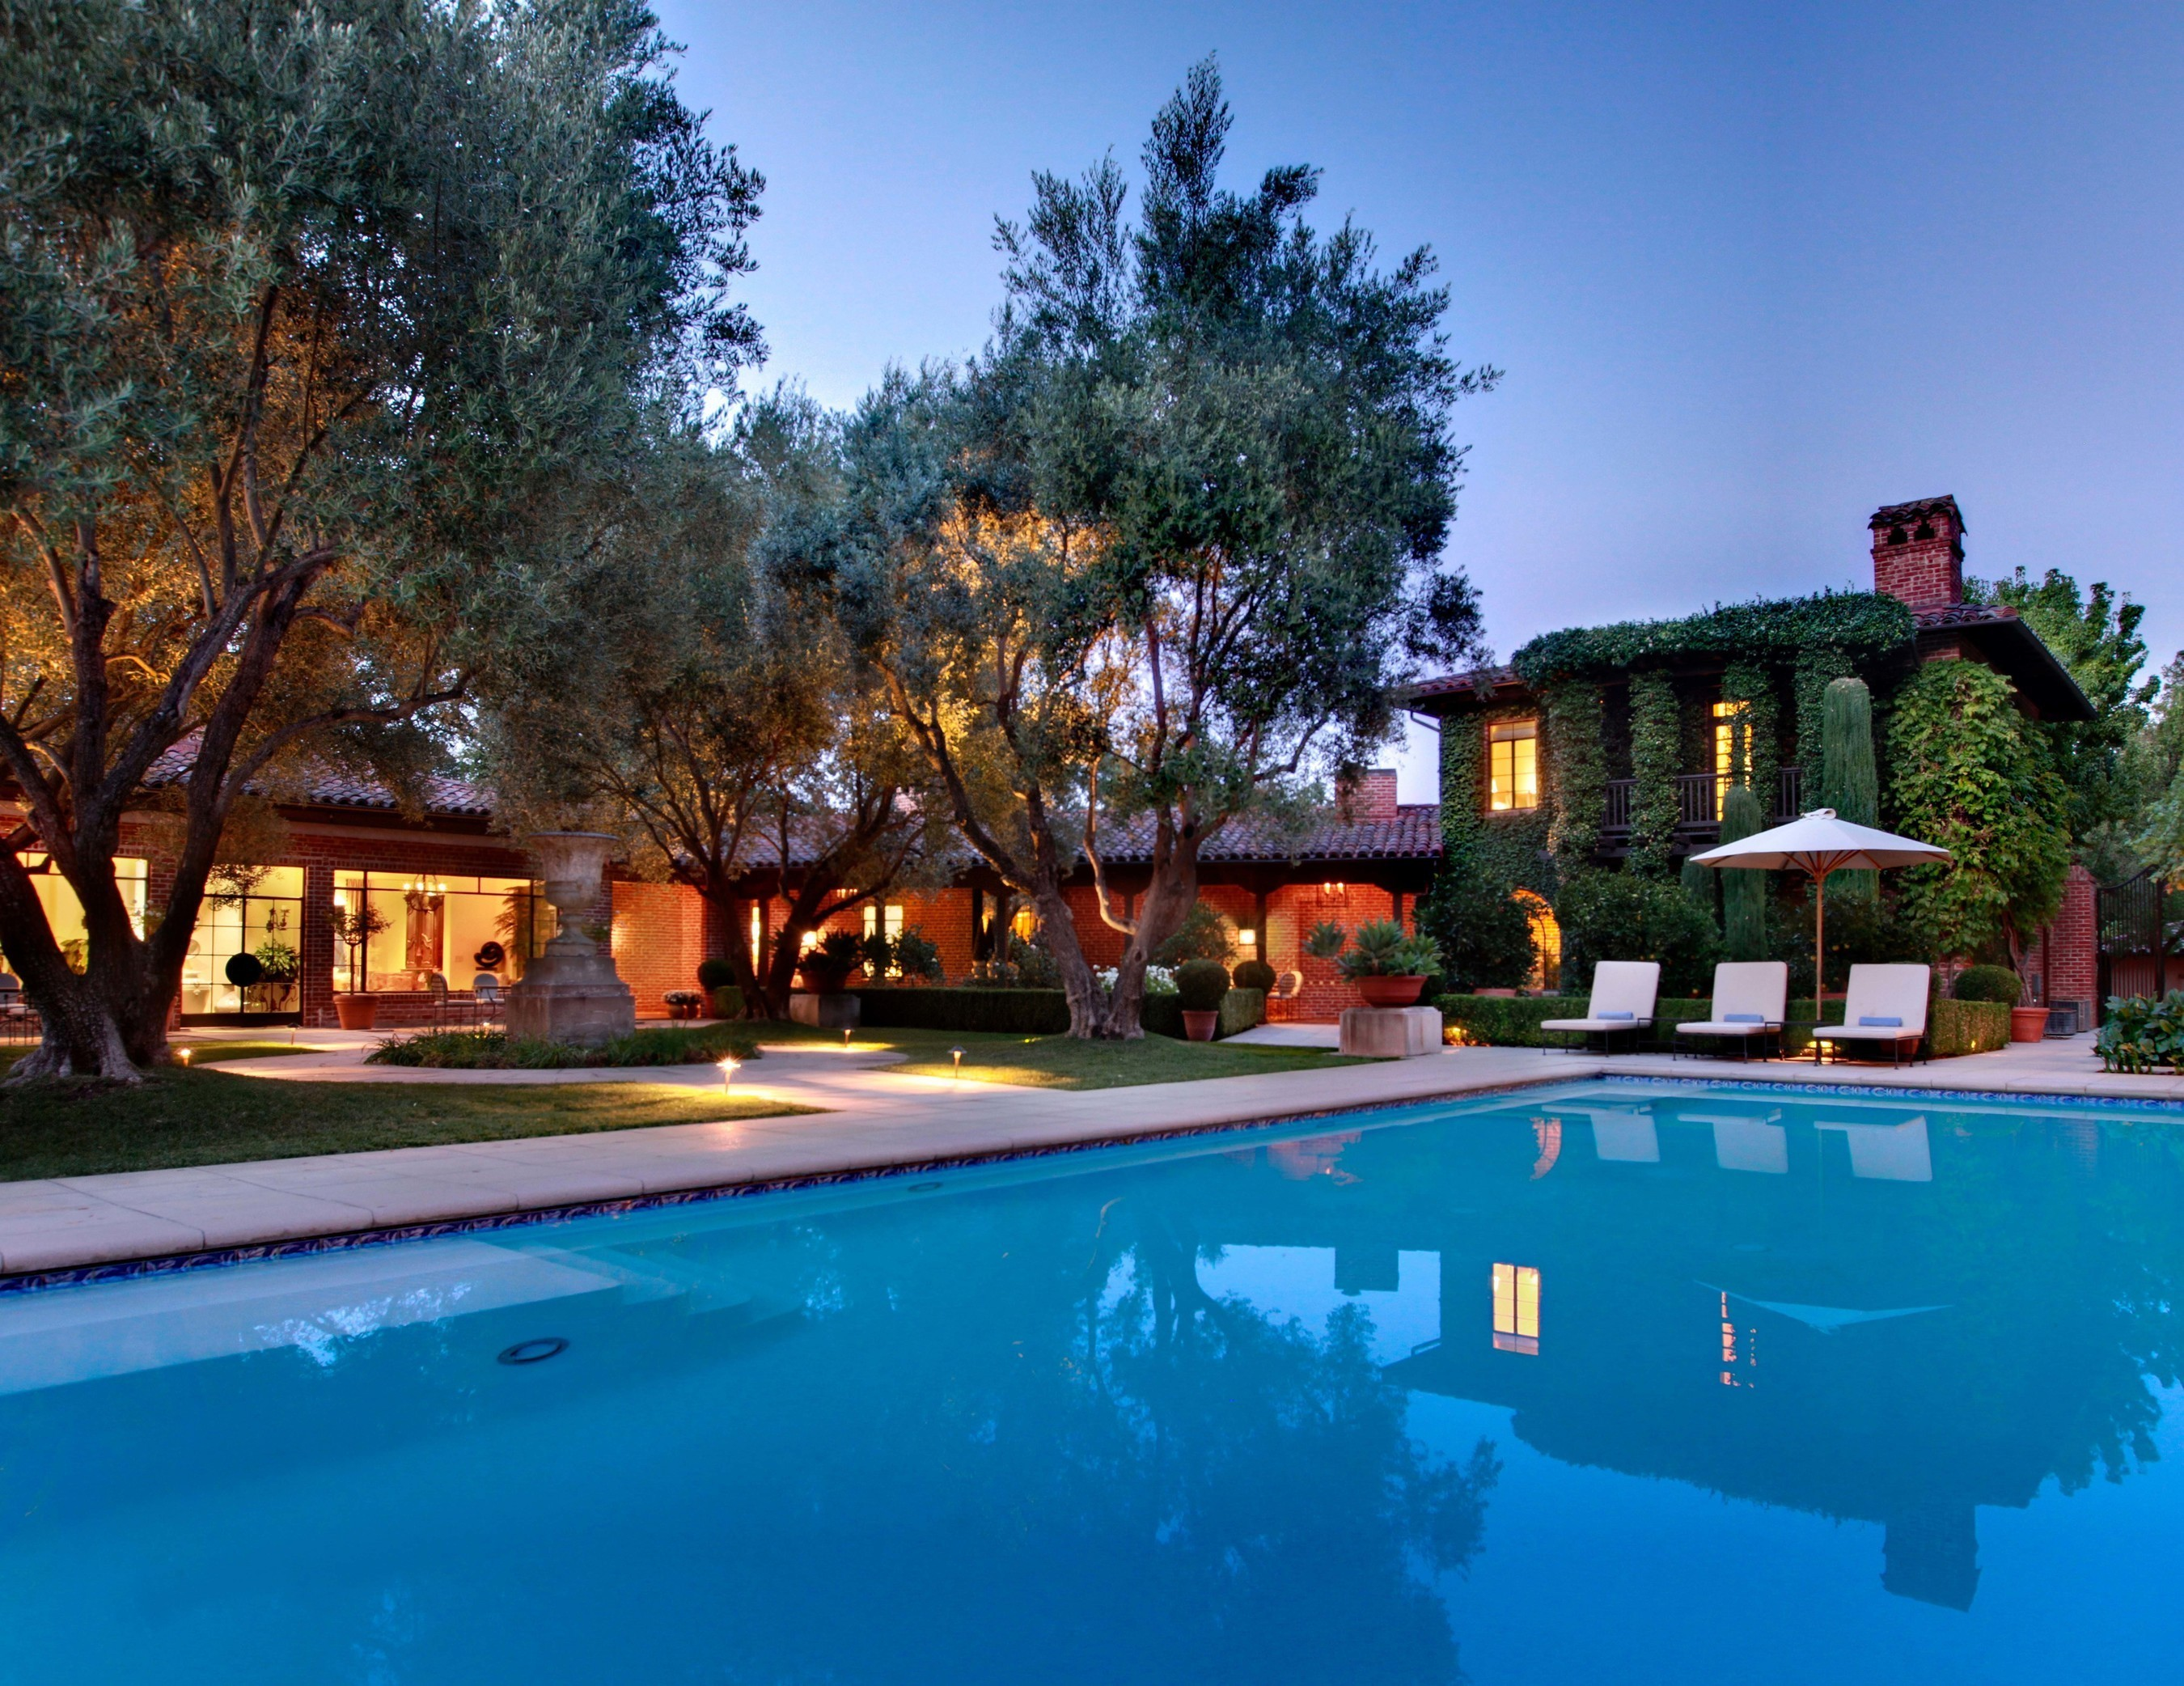 The 32-room Spanish-Mediterranean estate sits on 20 acres in the heart of Napa Valley (PRNewsFoto/Concierge Auctions)